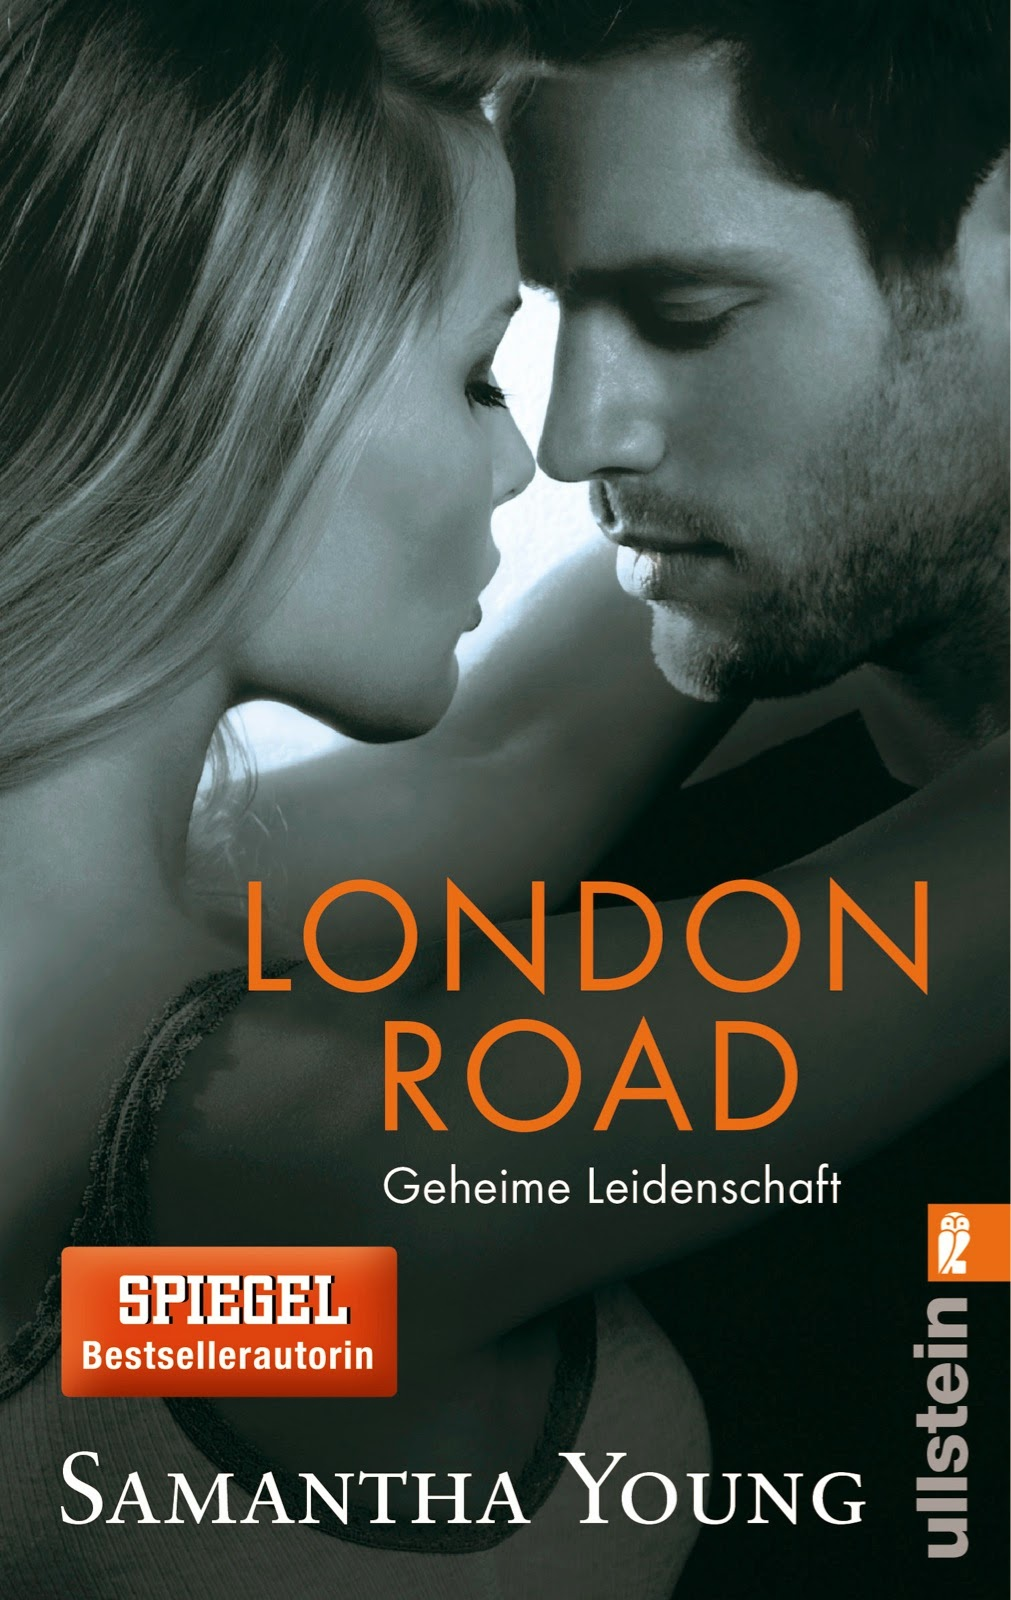 http://www.amazon.de/London-Road-Leidenschaft-Deutsche-Edinburgh/dp/3548285988/ref=sr_1_1_bnp_1_pap?ie=UTF8&qid=1399880162&sr=8-1&keywords=london+road